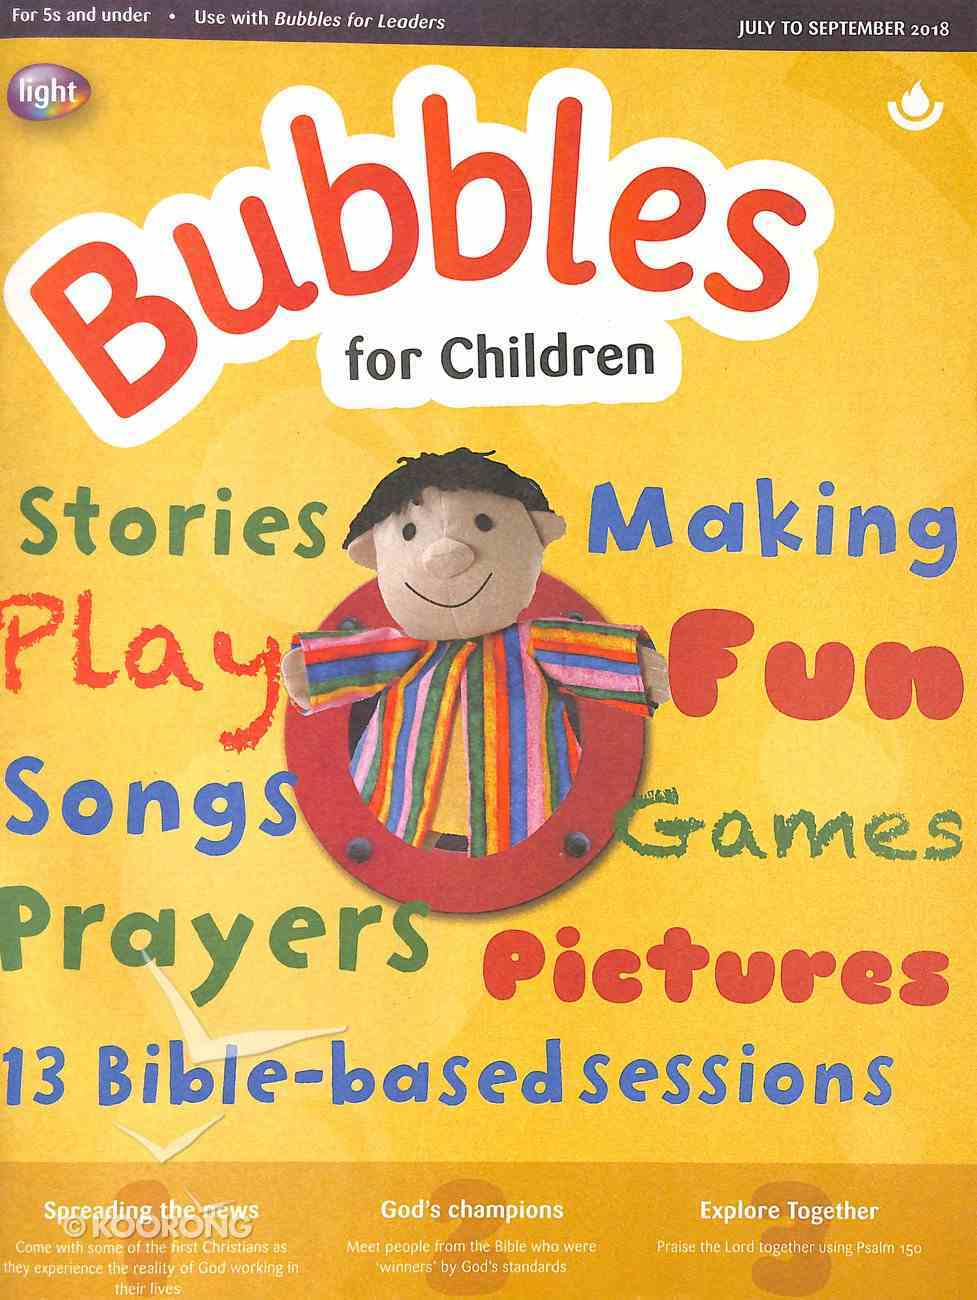 Light: Bubbles 2018 #03: Jul-Sep Student's Guide (5 And Under) Paperback